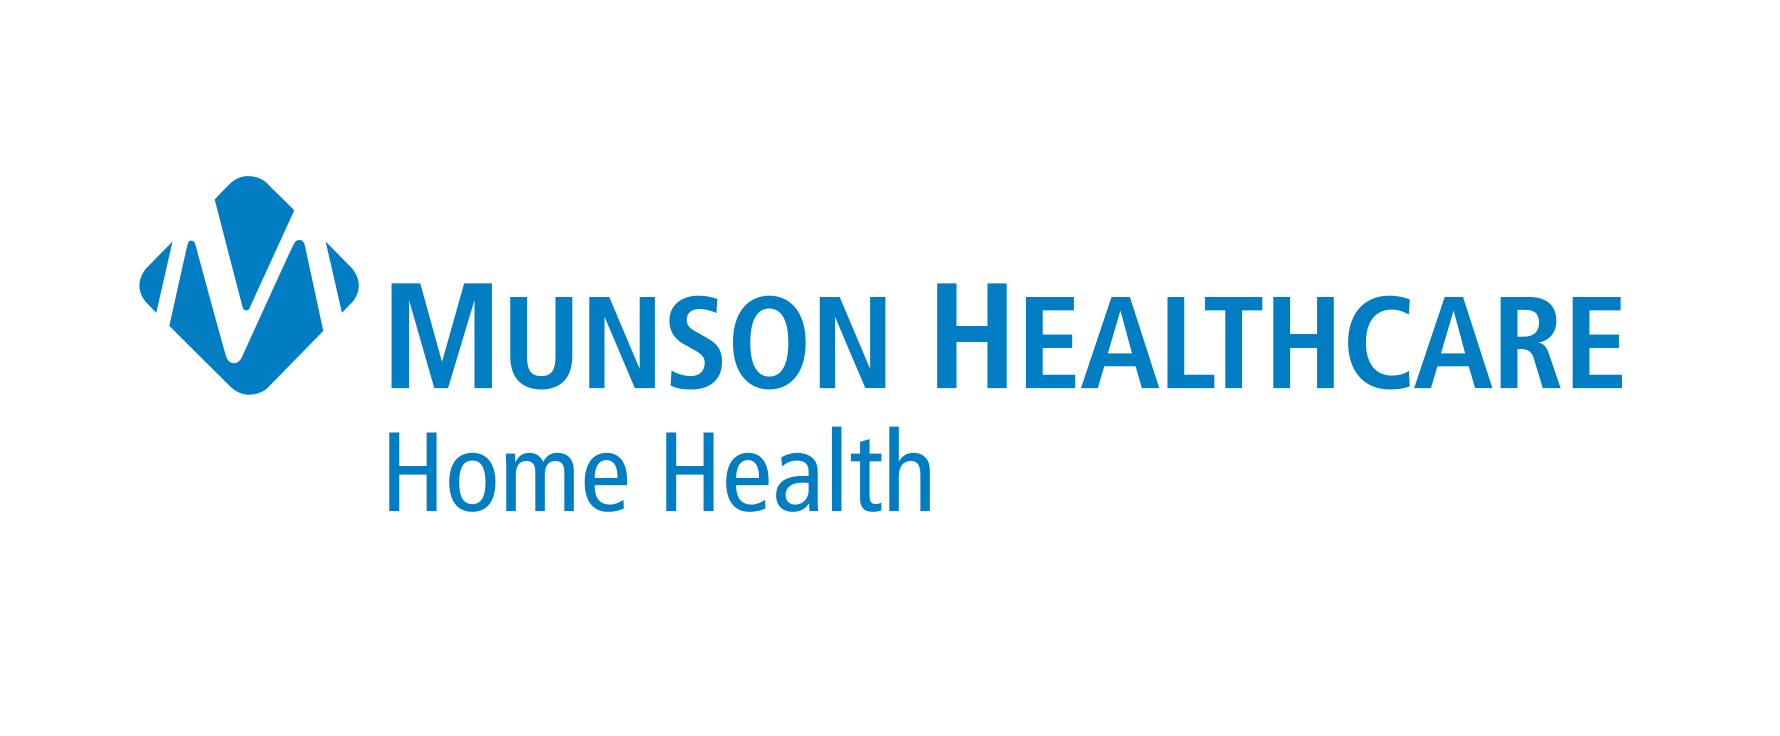 Munson Healthcare Home Health and Hospice